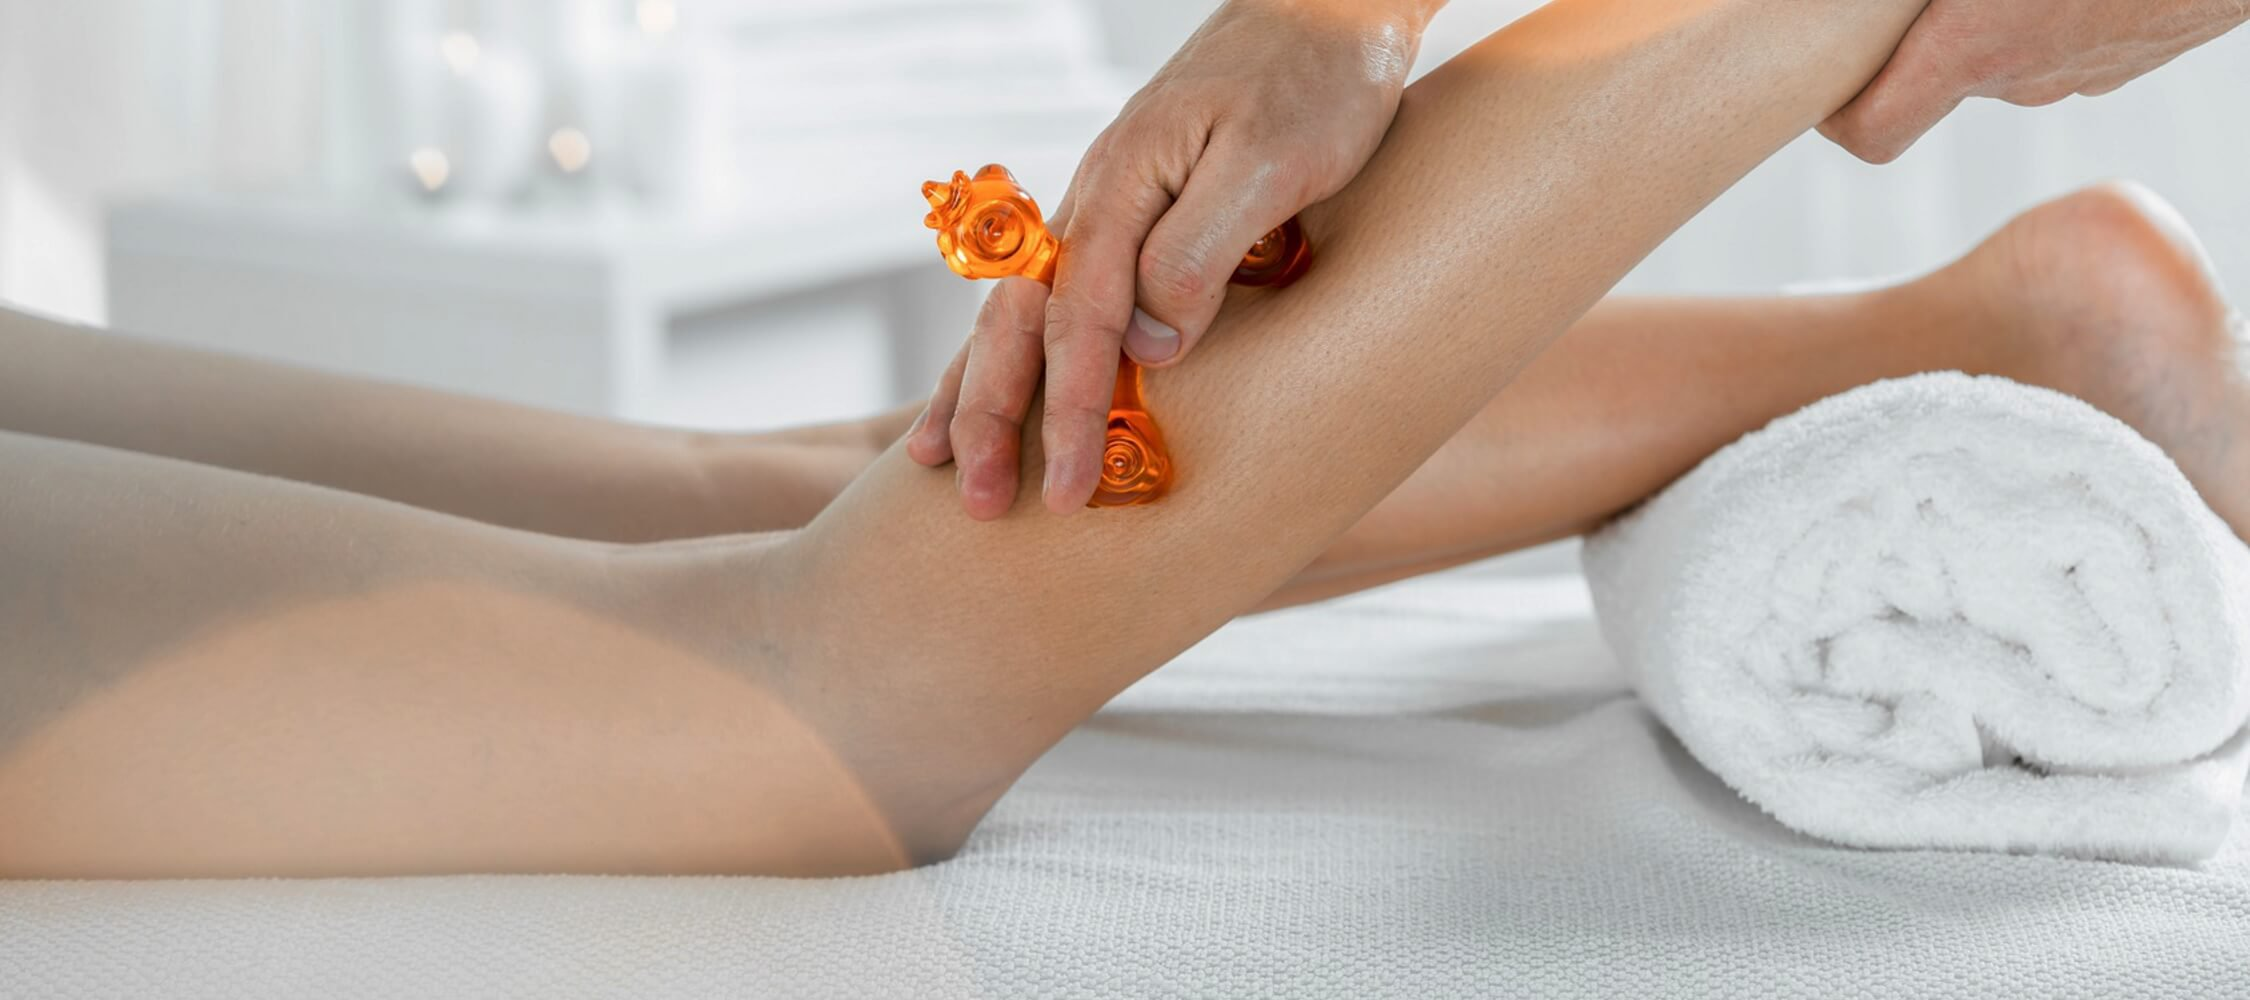 City_Hotel_Merano_Spa_Massage_Fuss_Beine_Anti_Cellulite_90065185_2250x1000